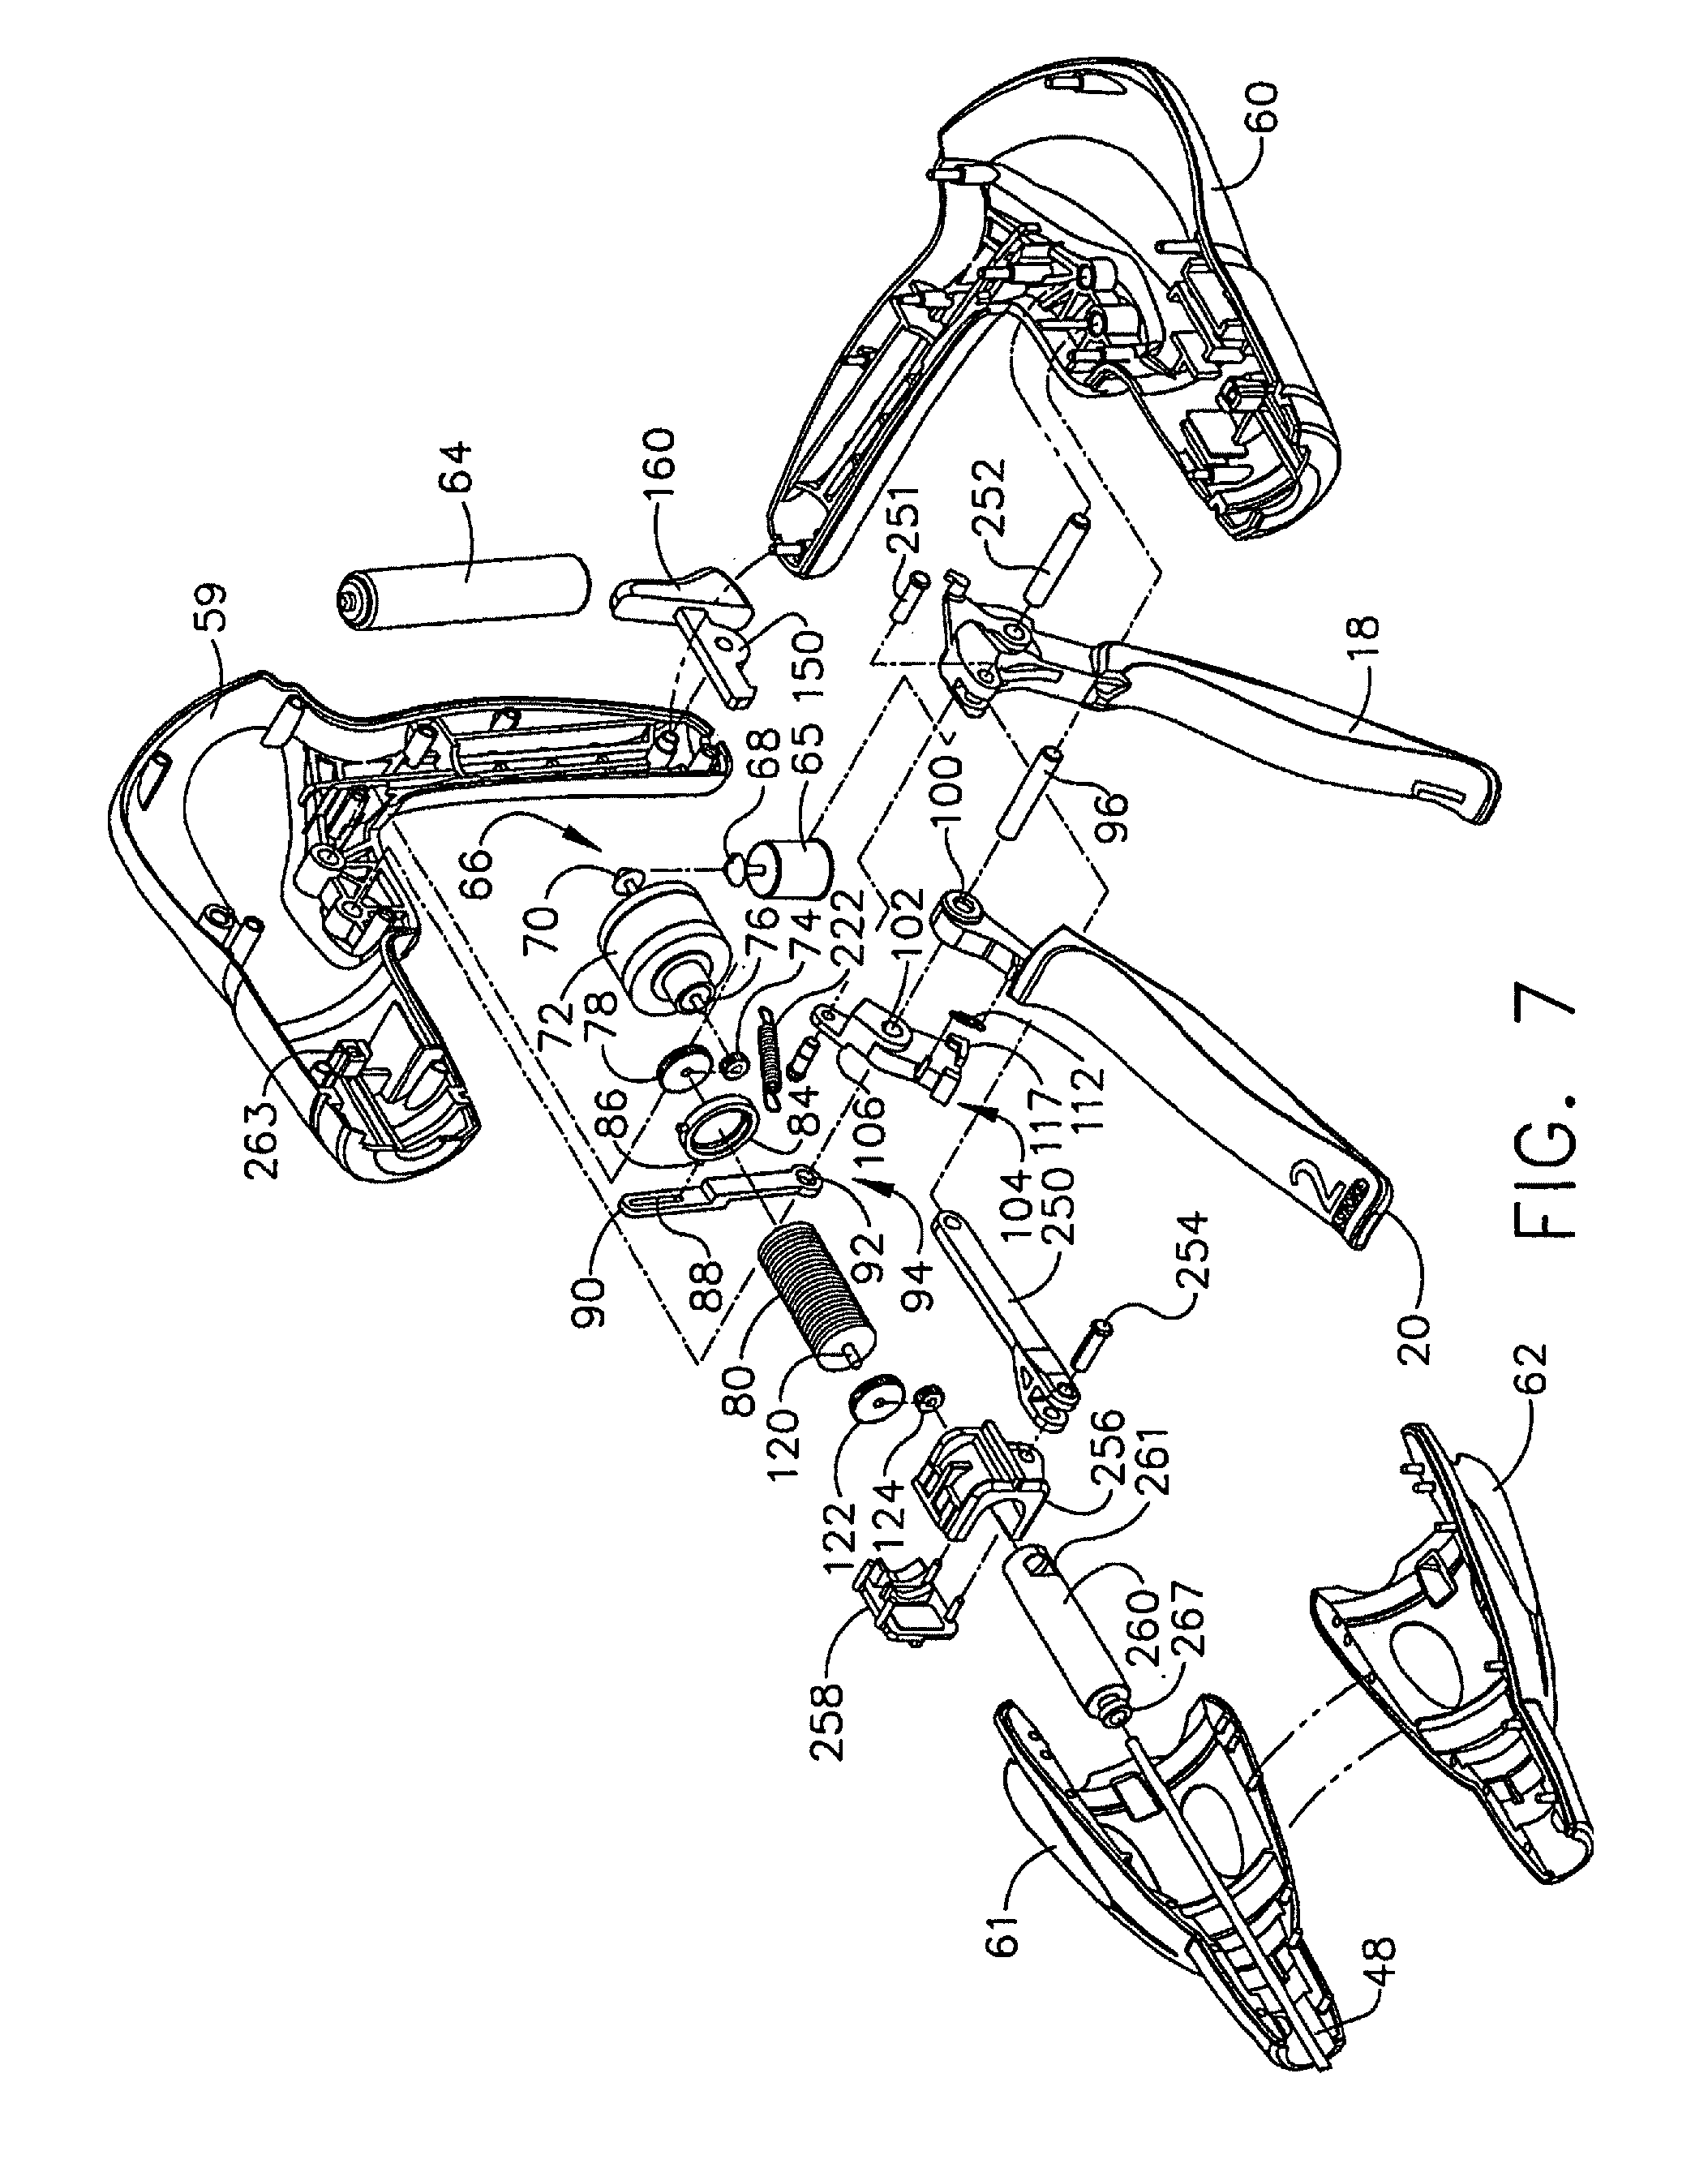 US B2 Surgical instrument having force feedback capabilities